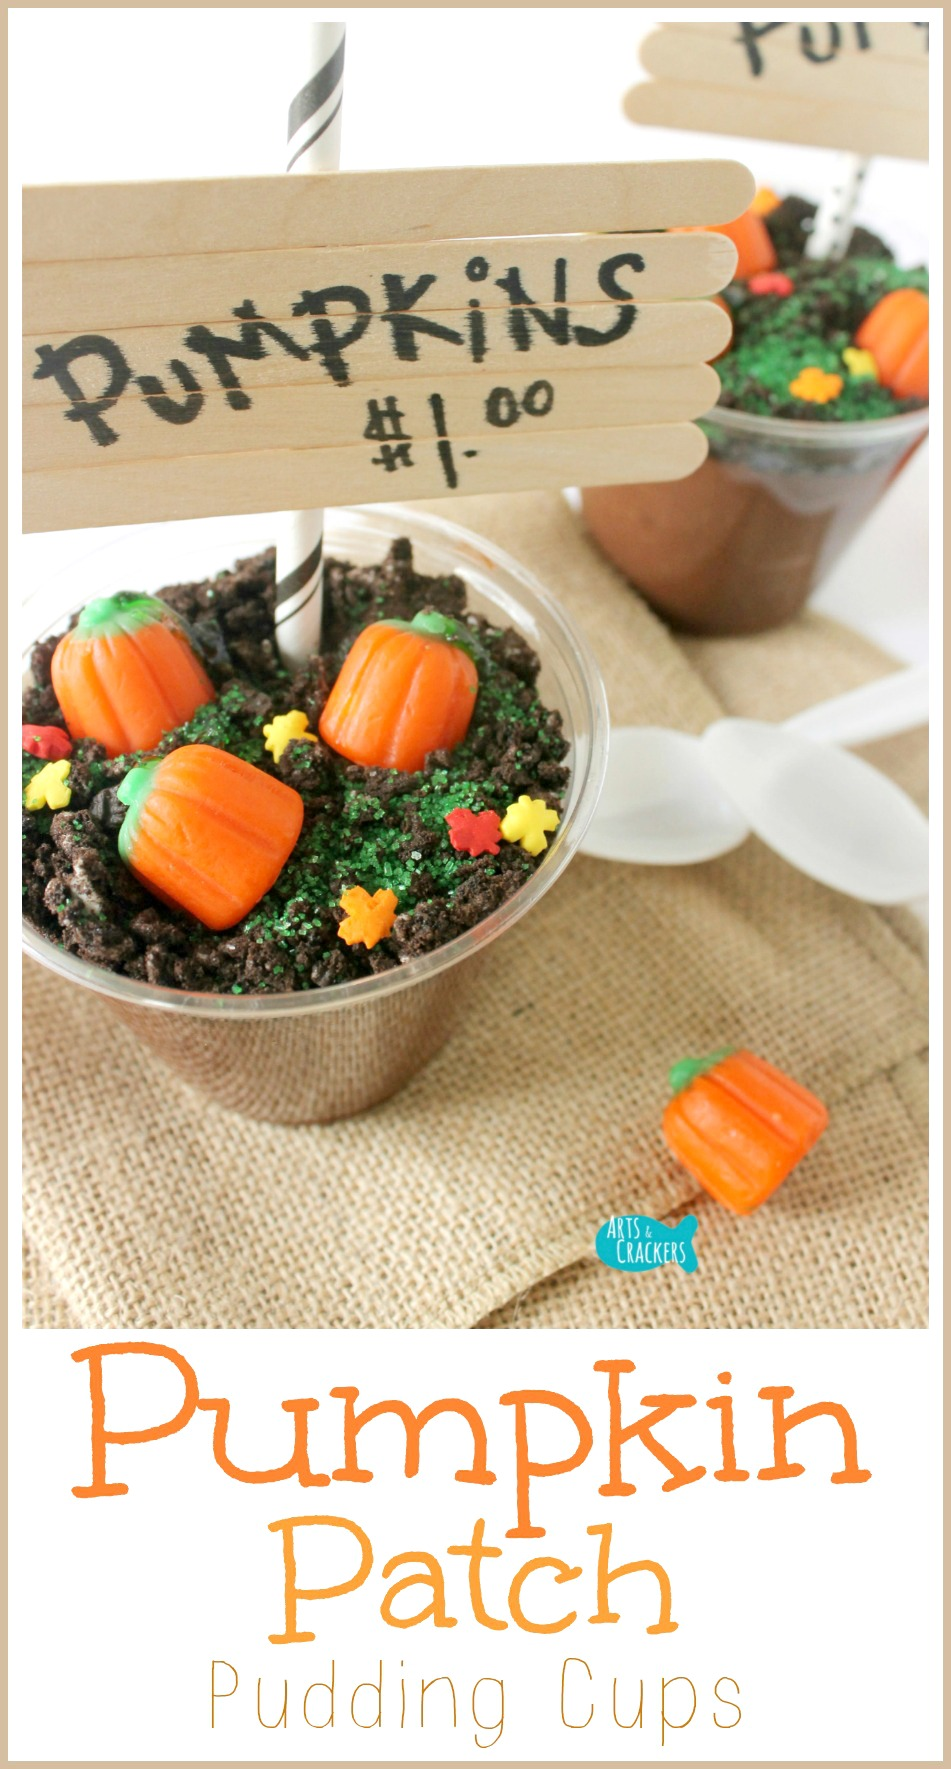 Classroom Snack Ideas ~ The original diy pumpkin patch pudding cups for fall and